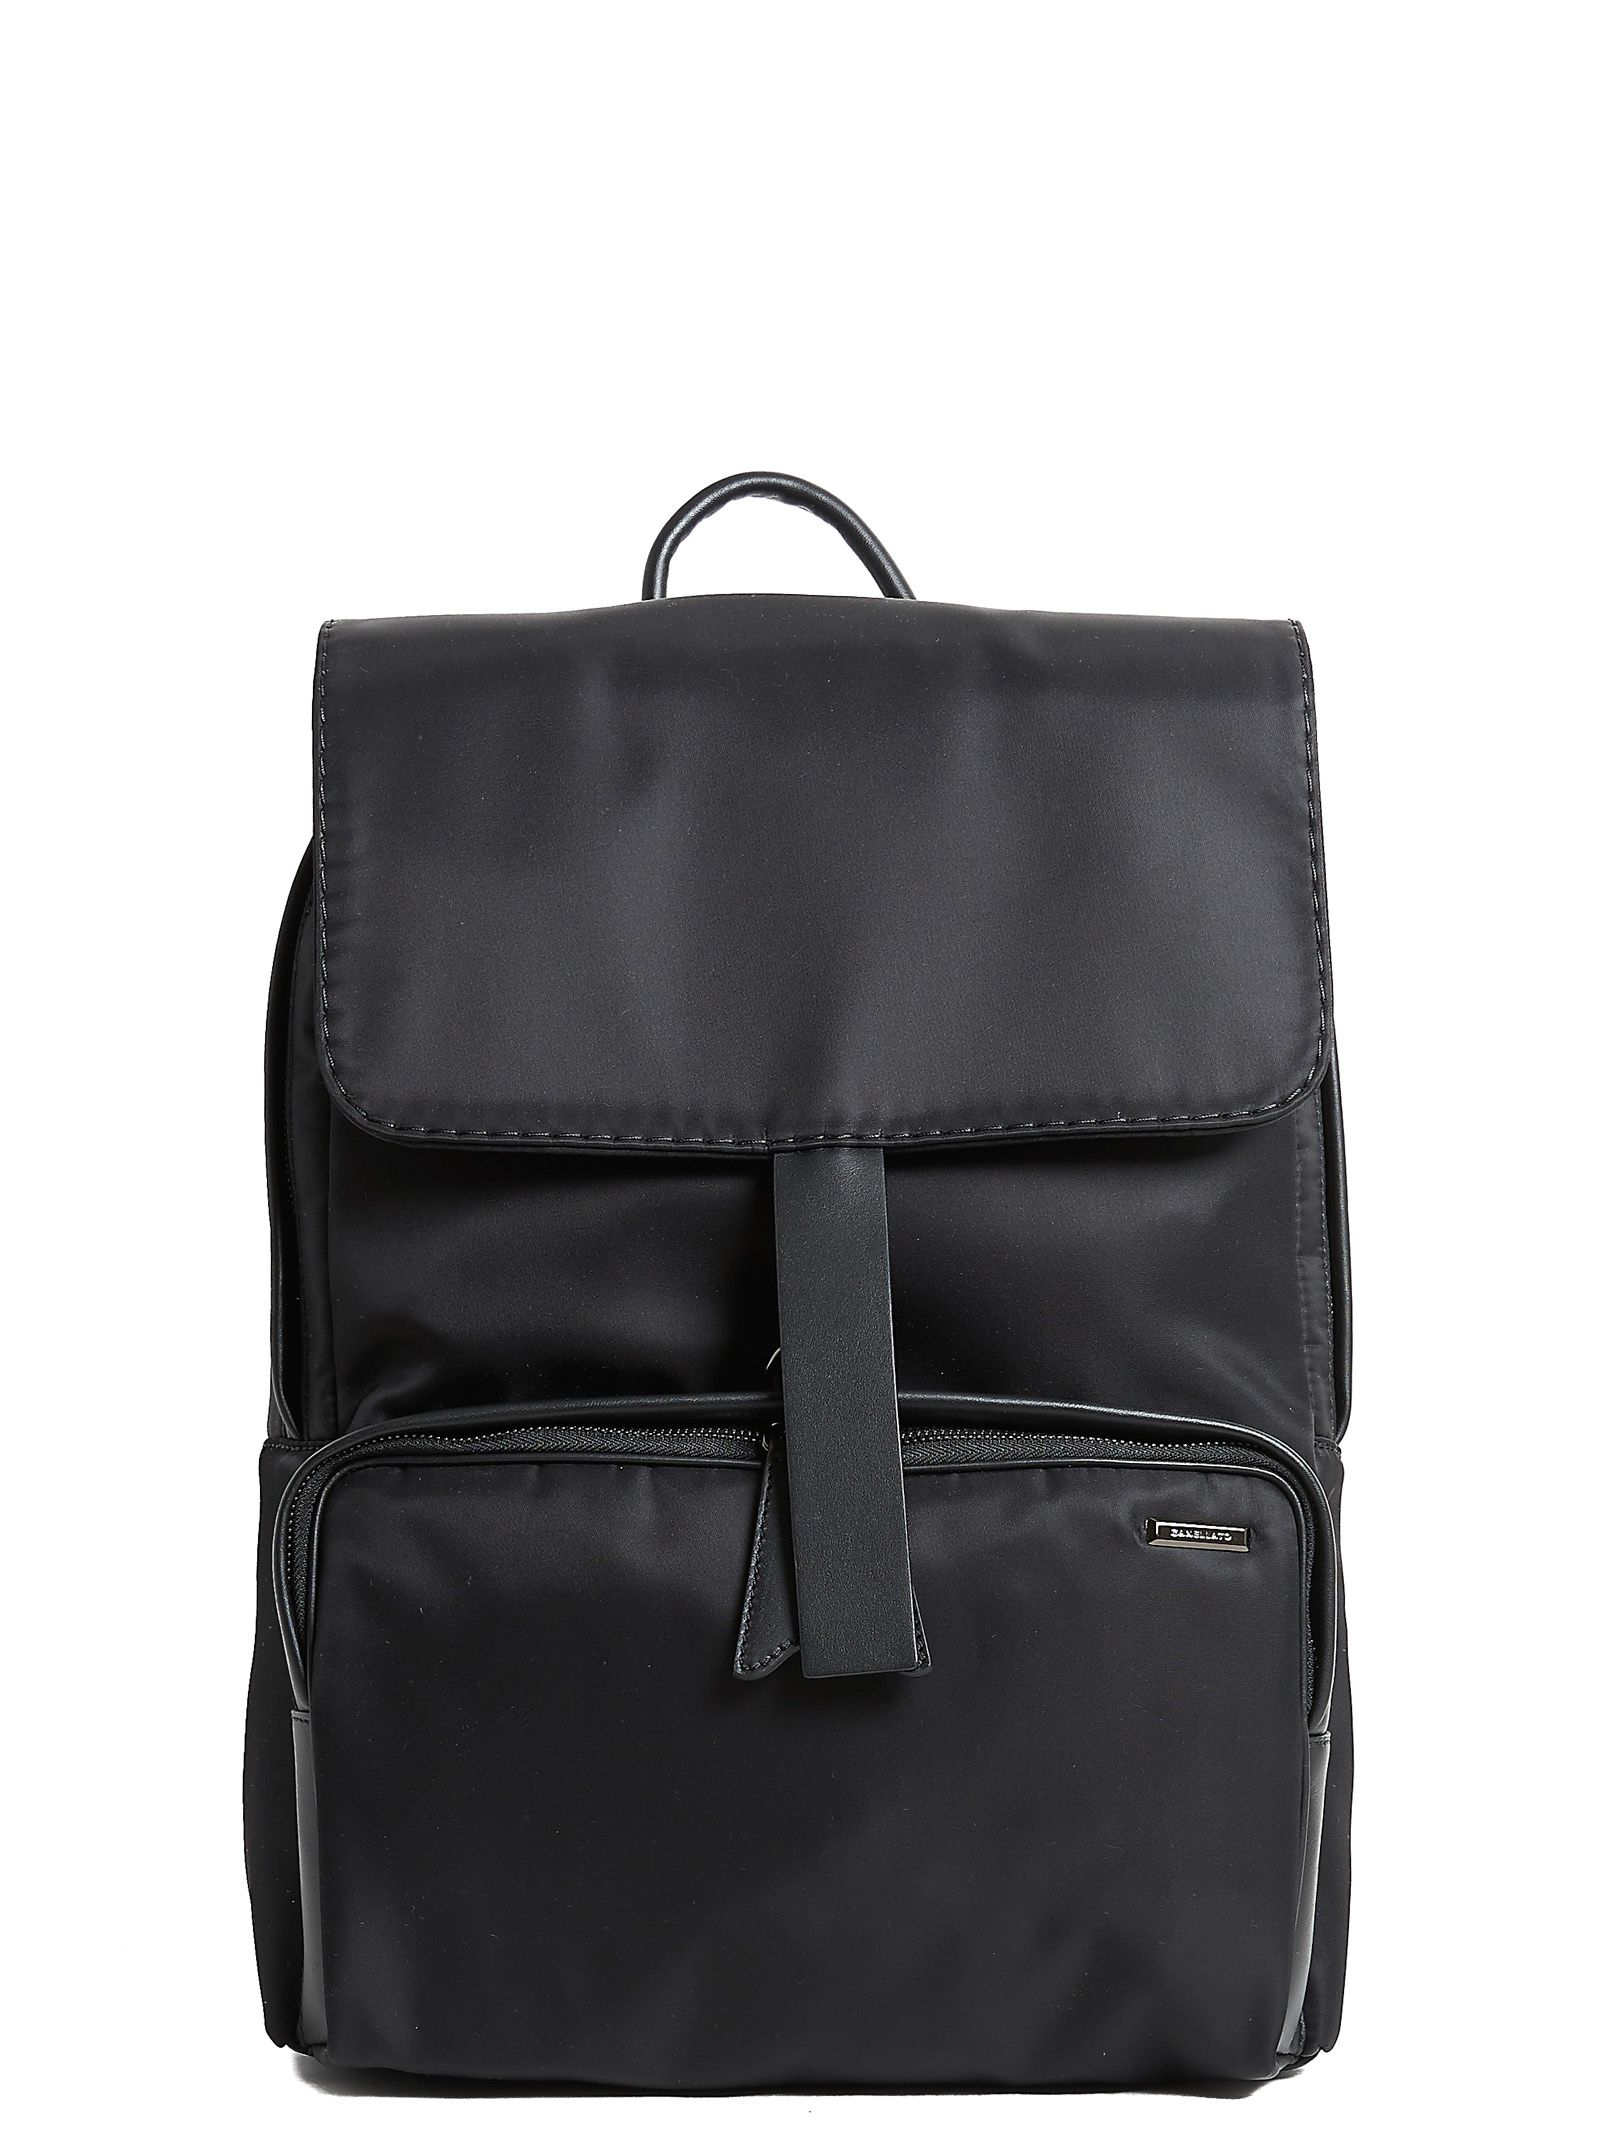 Zanellato Backpack